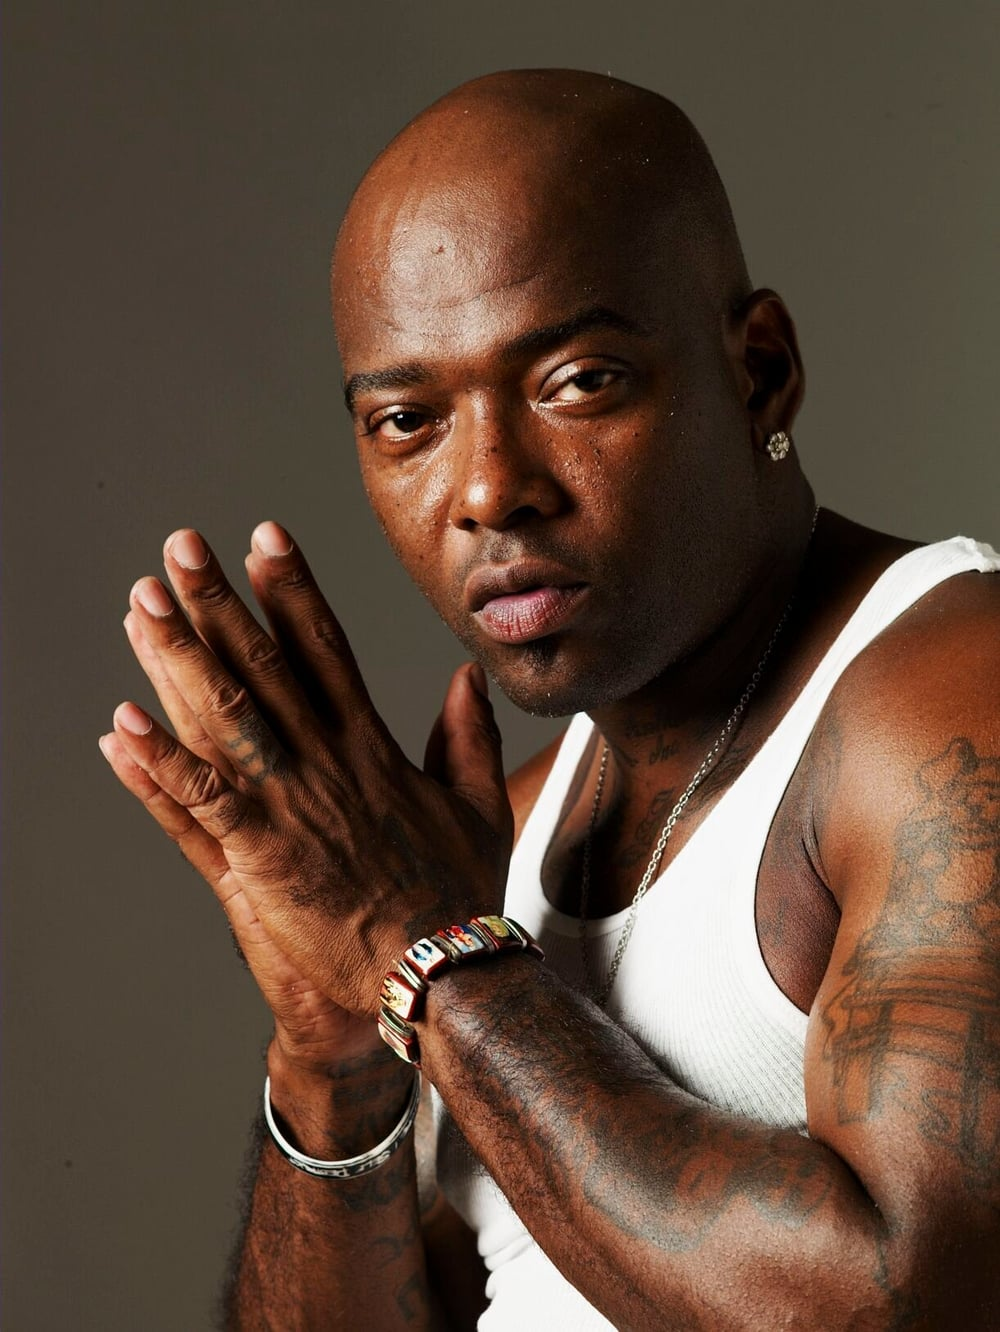 Treach from Naughty By Nature,